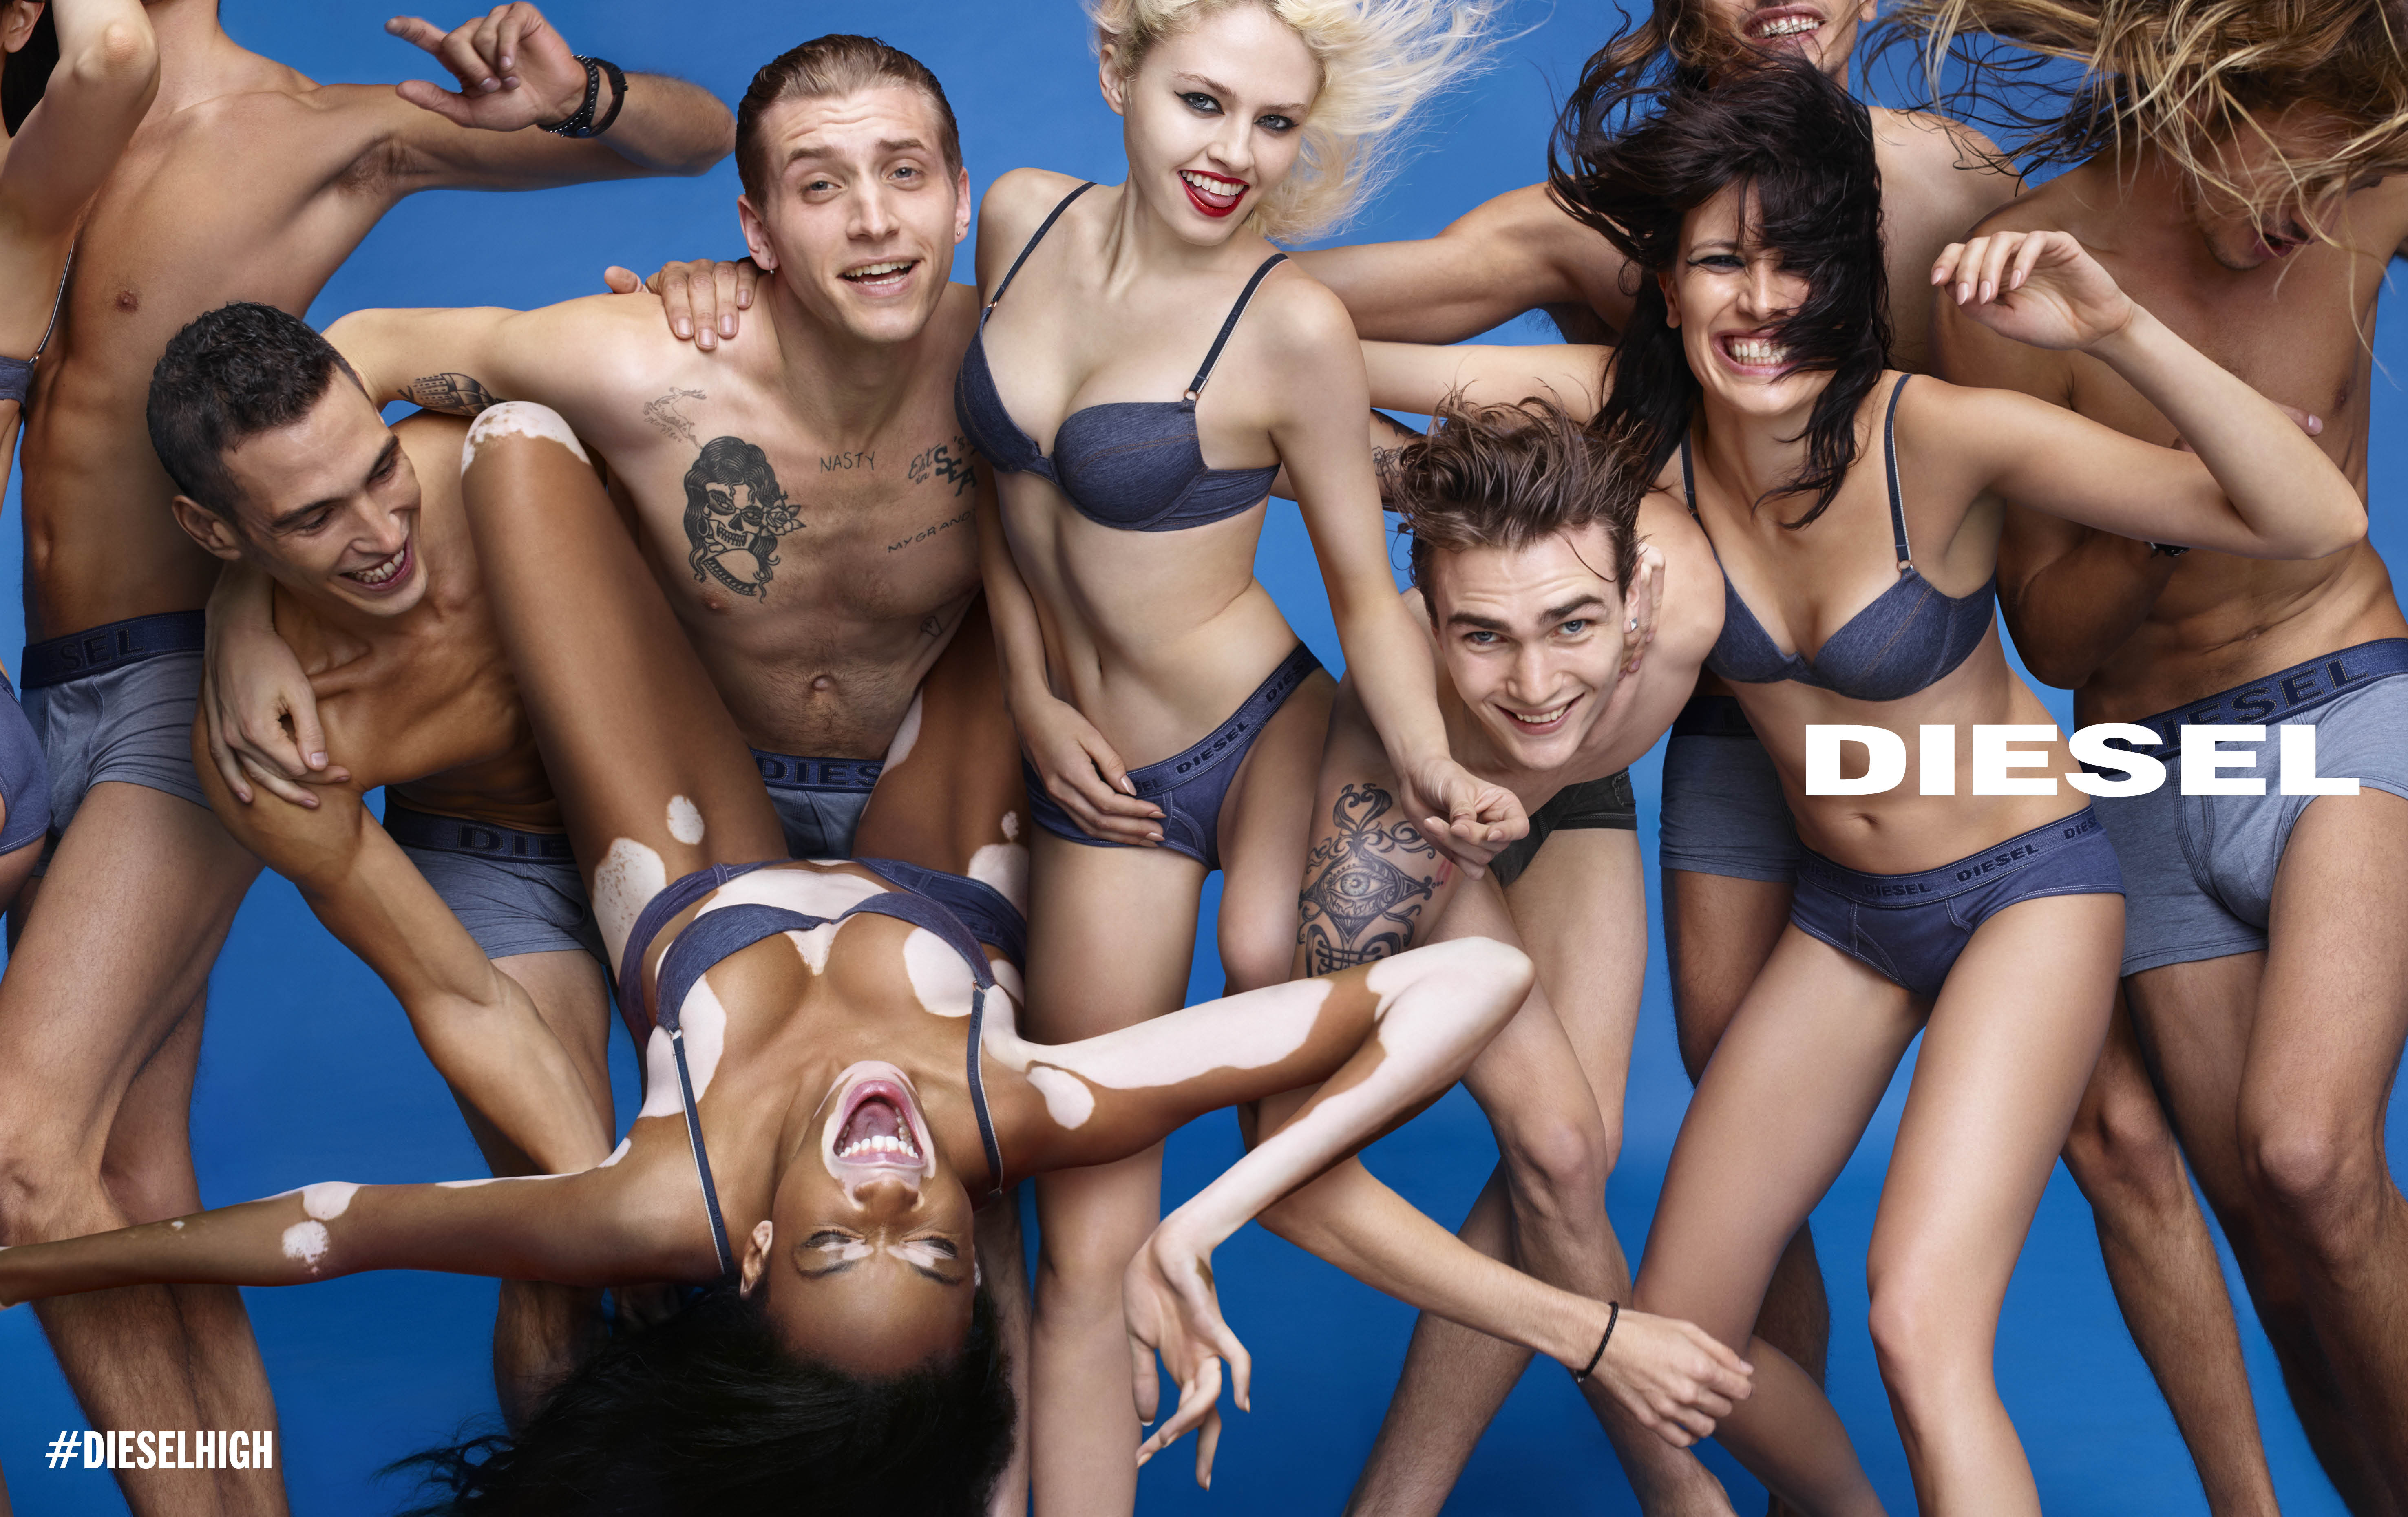 Ad Campaign | Diesel S/S 2015 #DIESELHIGH by Nick Knight